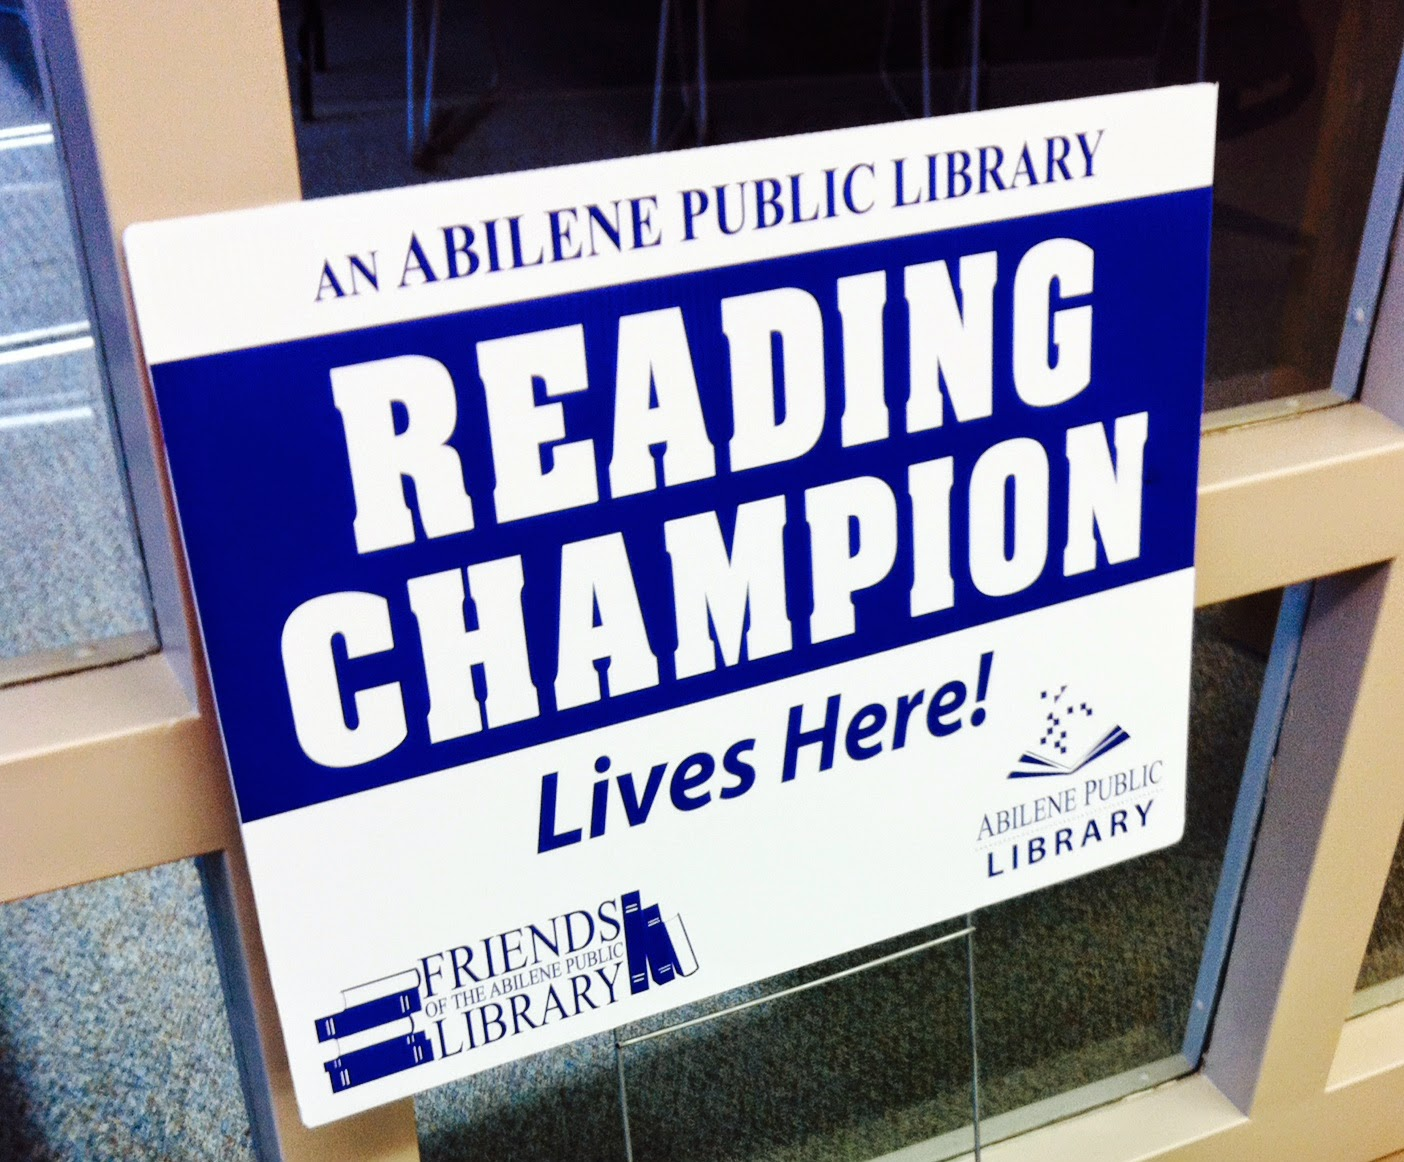 newsevents your library kids can be reading champions